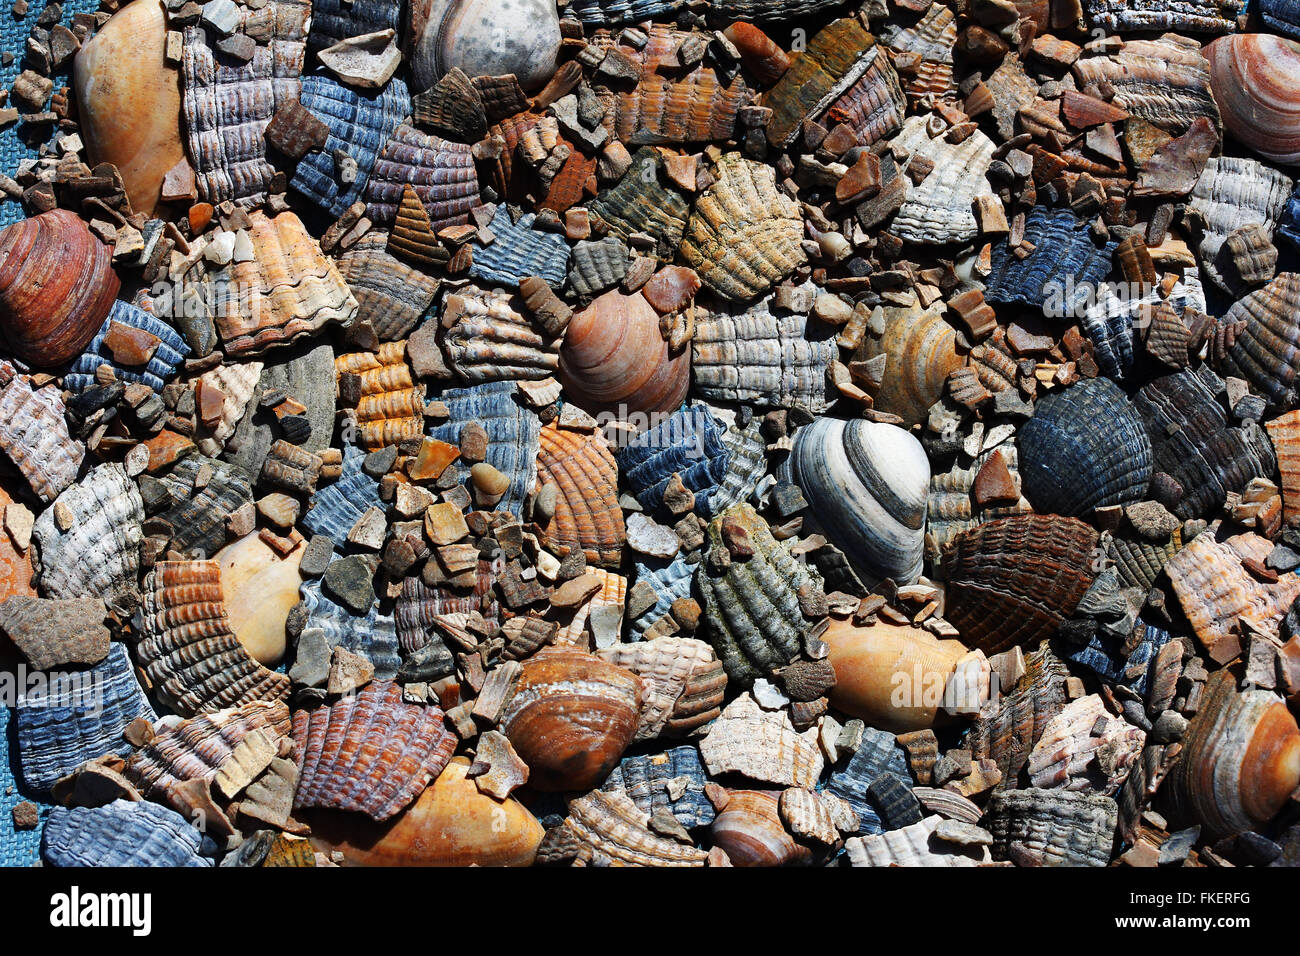 Sea shell pieces, details, fragments, Goeree-Overflakkee, South Holland province, North Sea Coast, Zeeland province - Stock Image